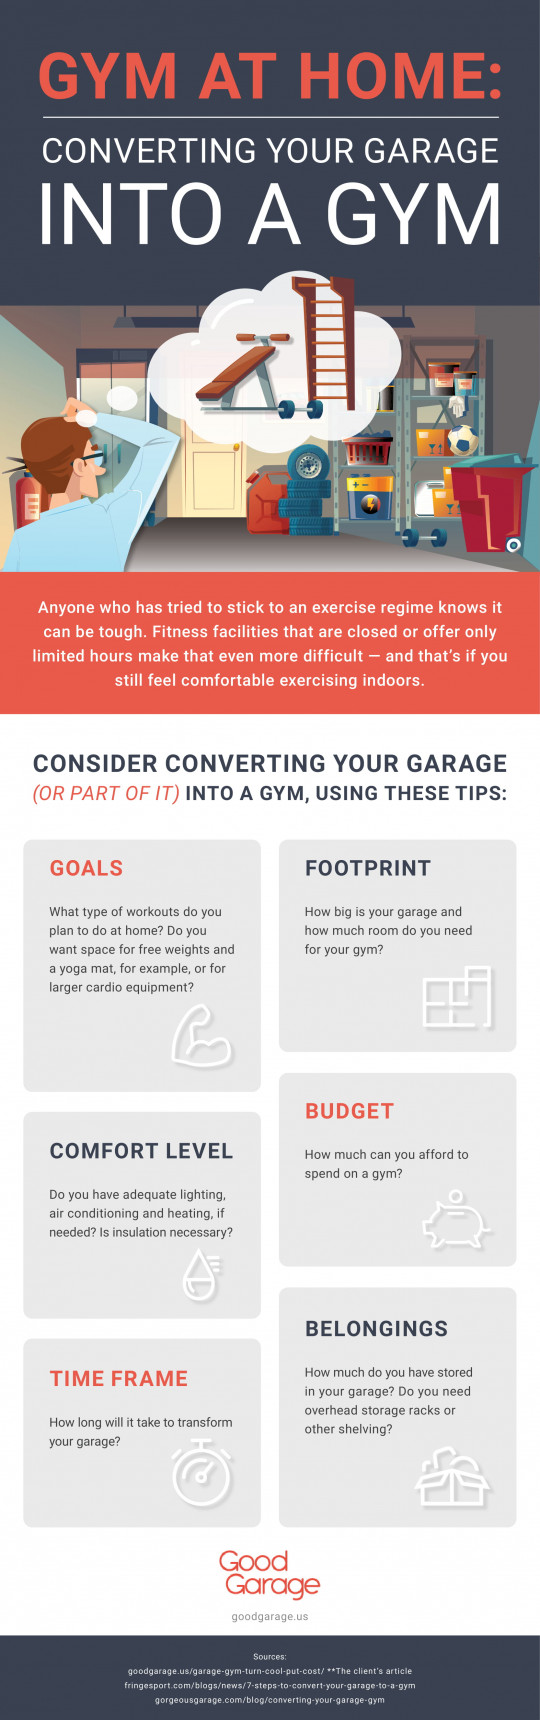 Gym At Home: Converting Your Garage Into A Gym